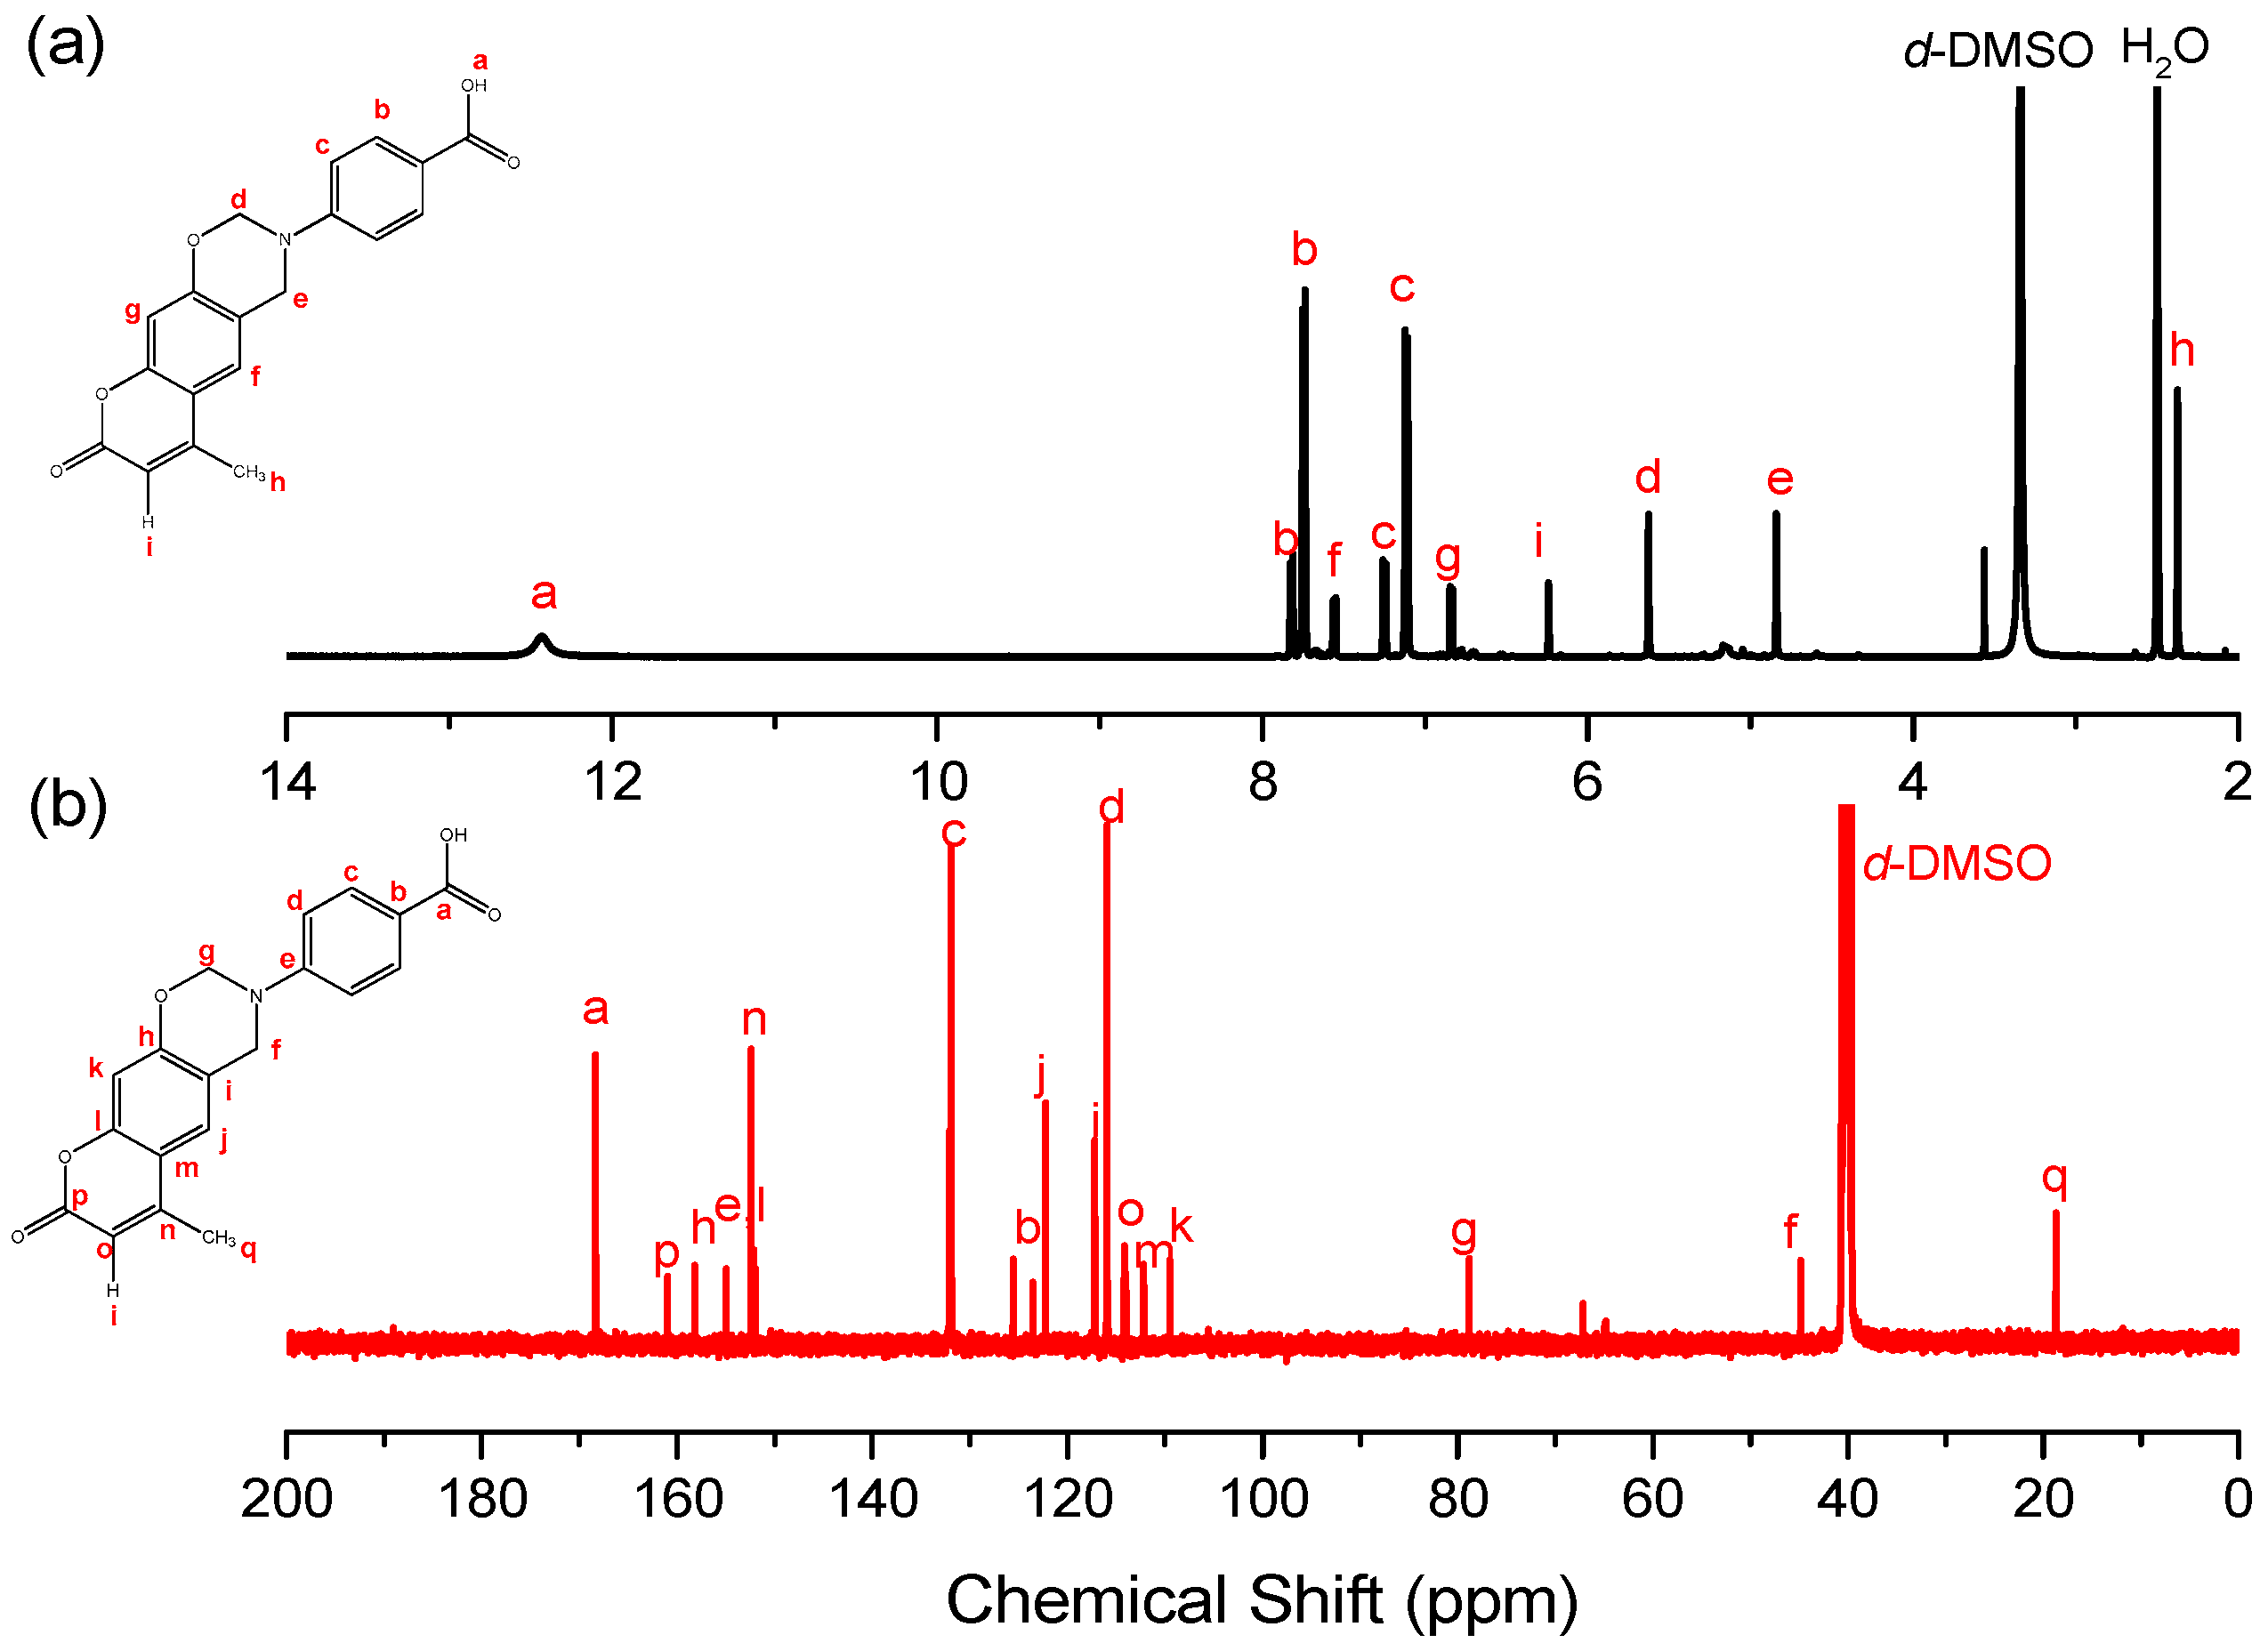 Polymers 09 00146 g001